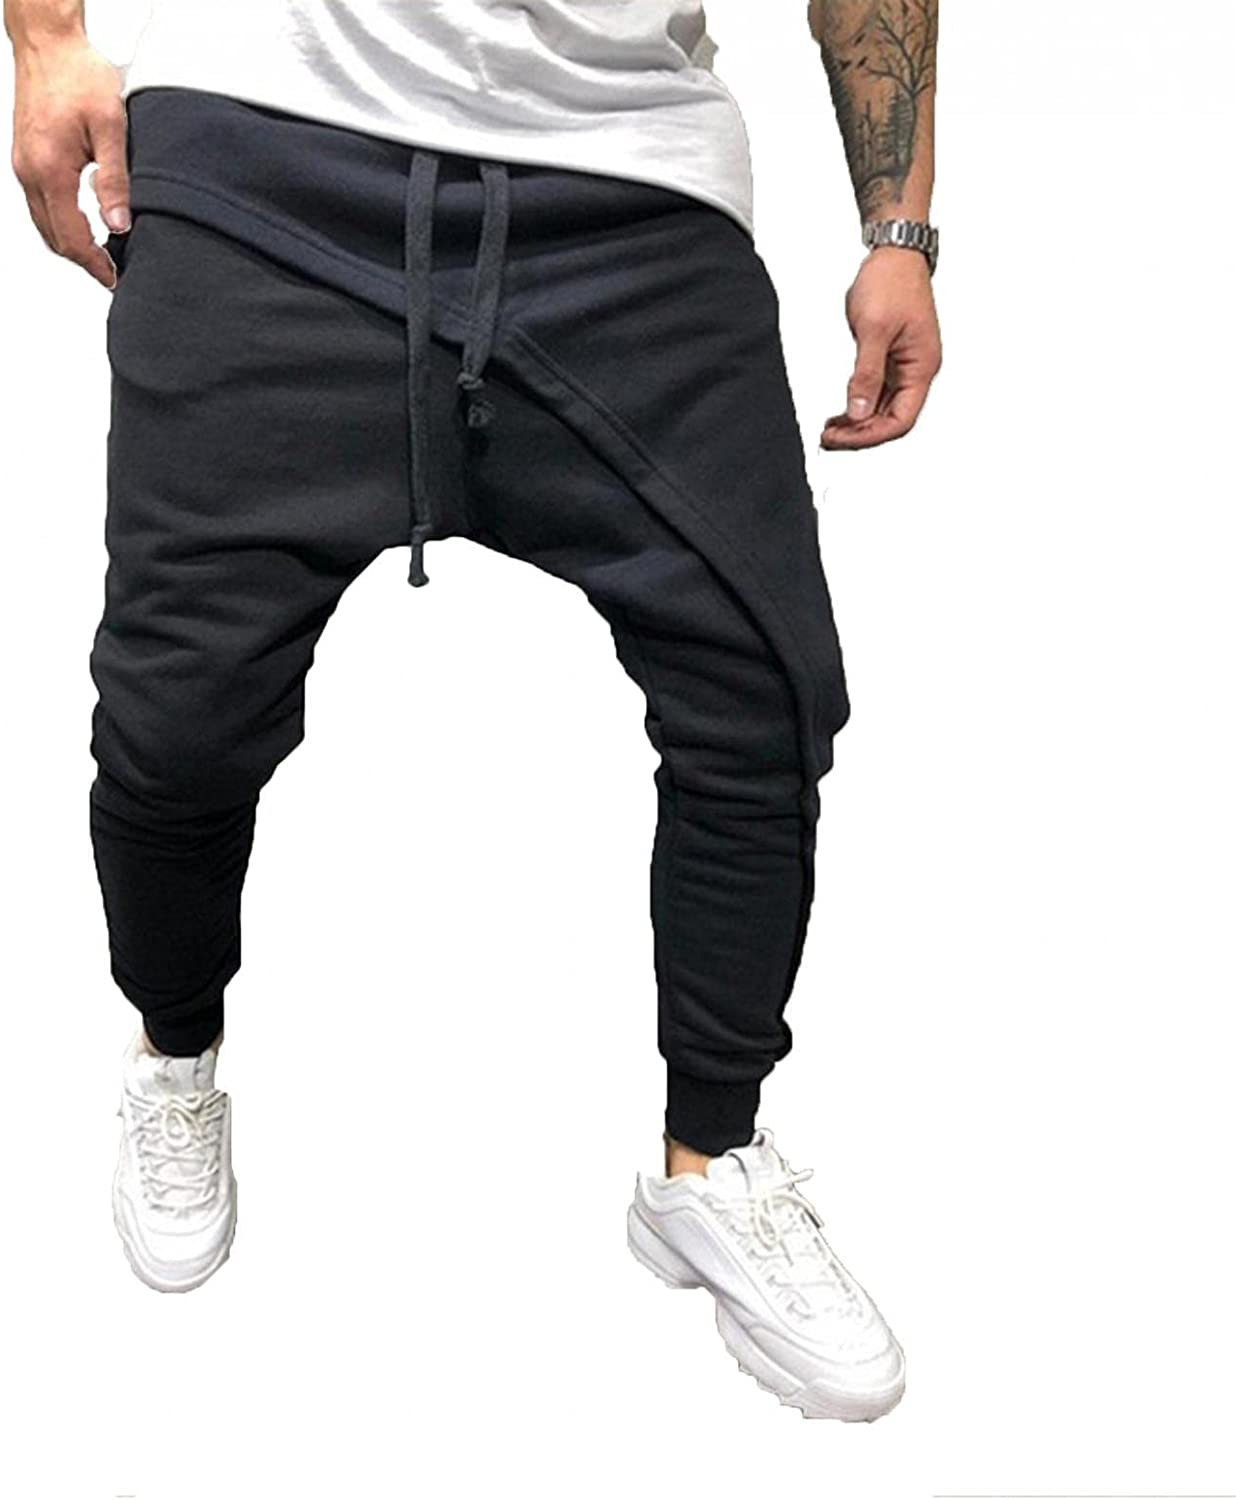 Beshion Sweatpants for Men Jogger Slim Hip Hop Pants Oversized Casual Sports Pull Rope Pants for Athletic Running Sport